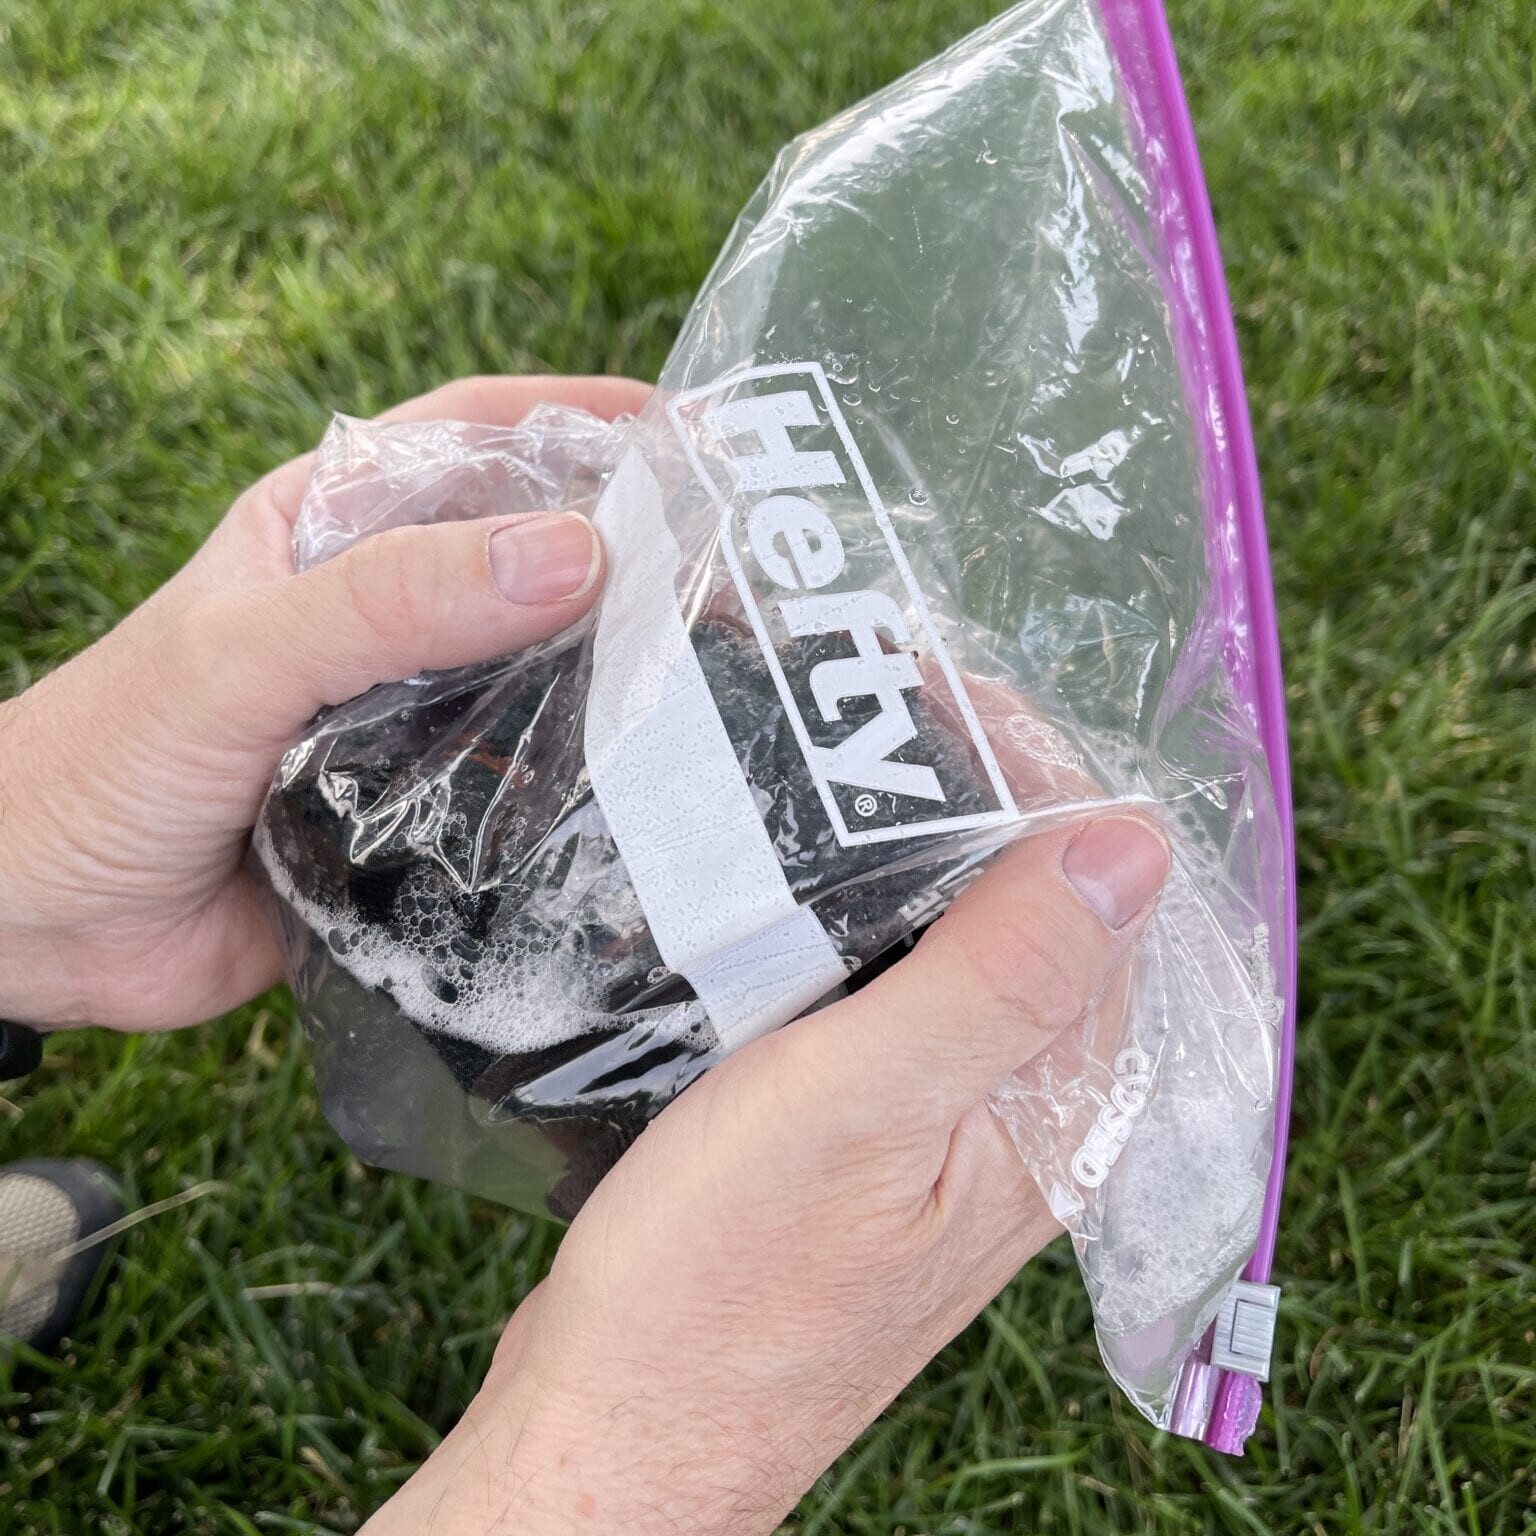 soapy socks being immersed into ziploc bag with soapy water